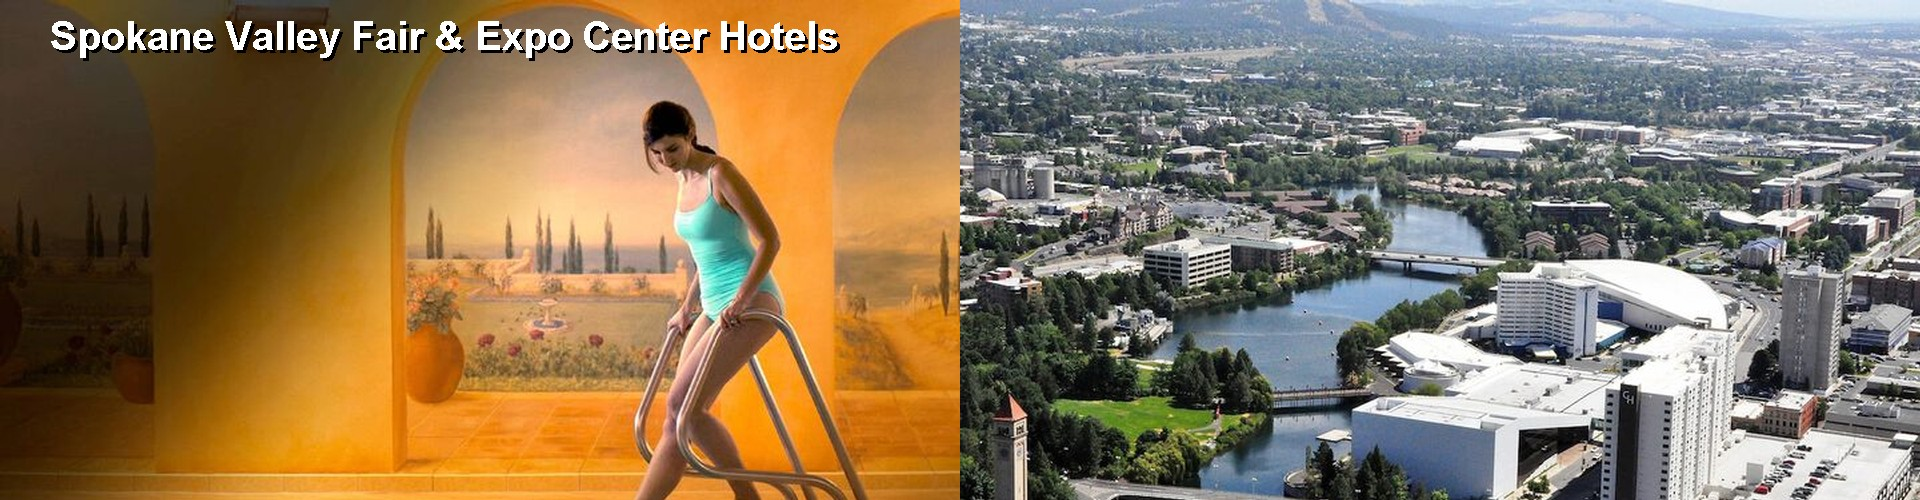 5 Best Hotels Near Spokane Valley Fair Expo Center